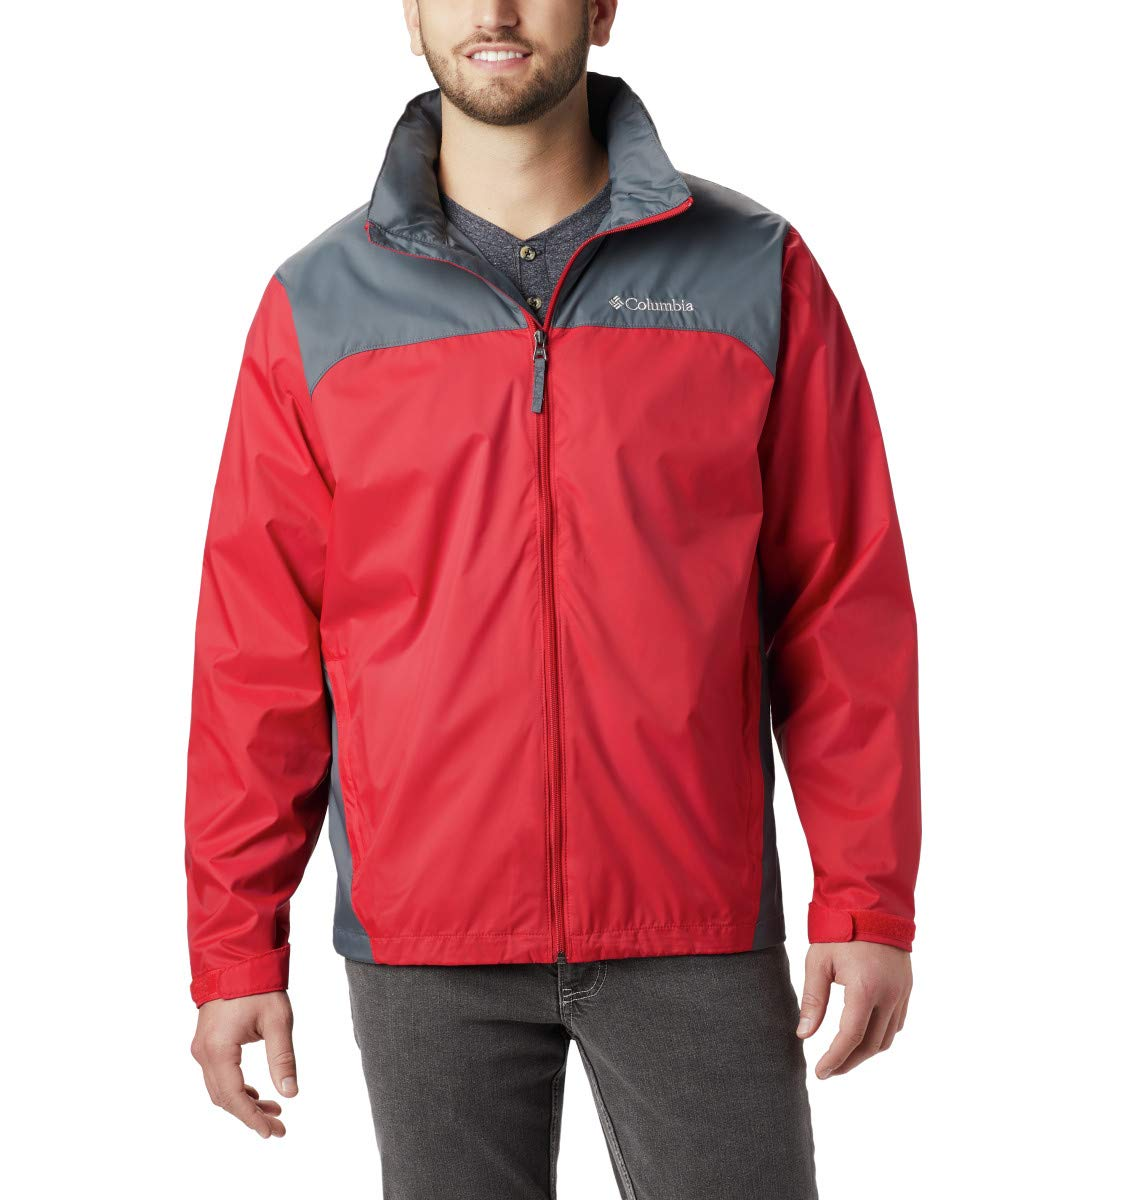 Columbia Men's Big & Tall Glennaker Lake Packable Rain Jacket,Mountain Red/Graphite,2X Tall